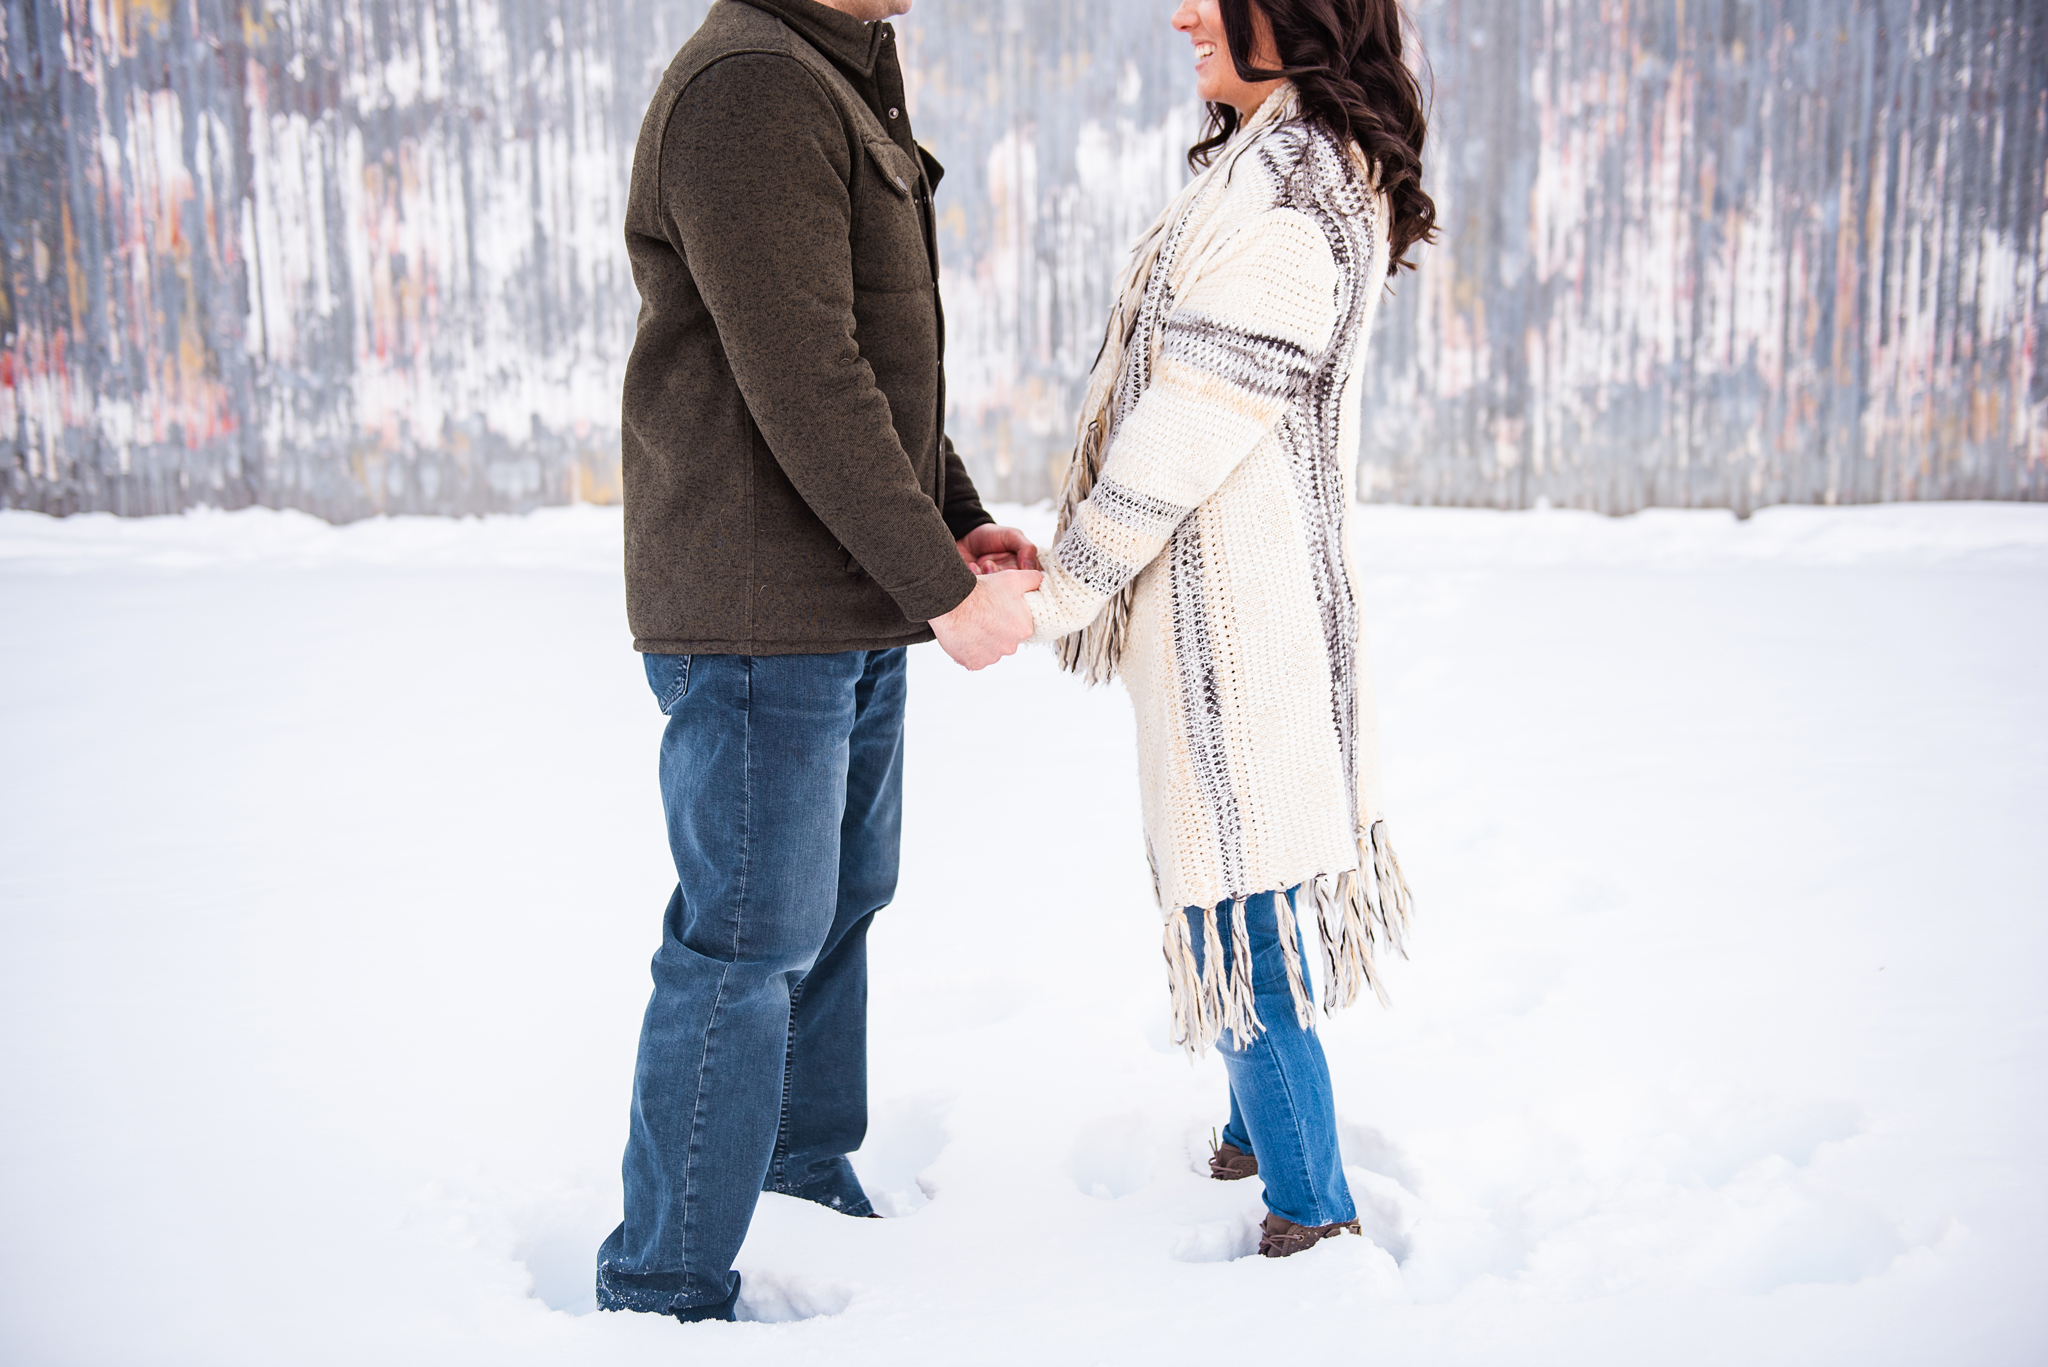 Fallbrook_Central_NY_Engagement_Session_JILL_STUDIO_Rochester_NY_Photographer_DSC_4742.jpg